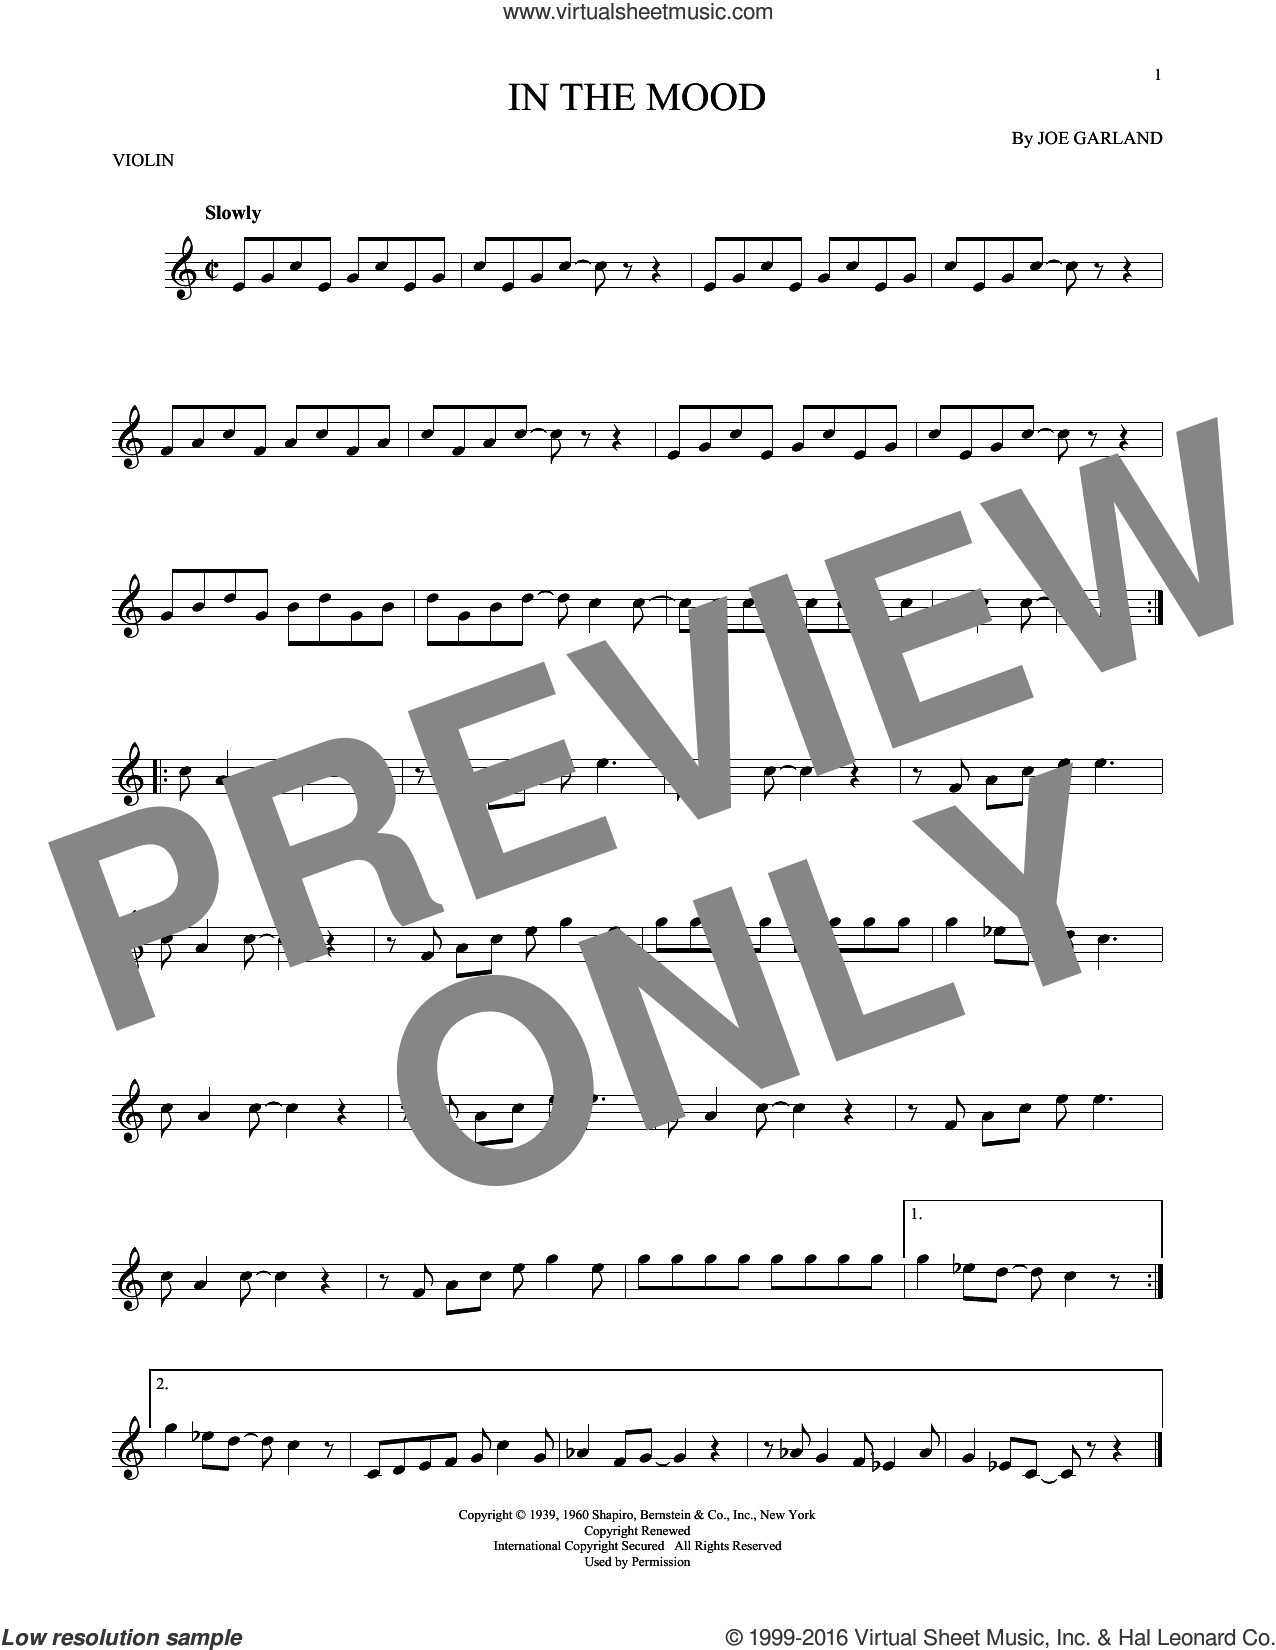 In The Mood sheet music for violin solo by Joe Garland and Glenn Miller & His Orchestra, intermediate skill level